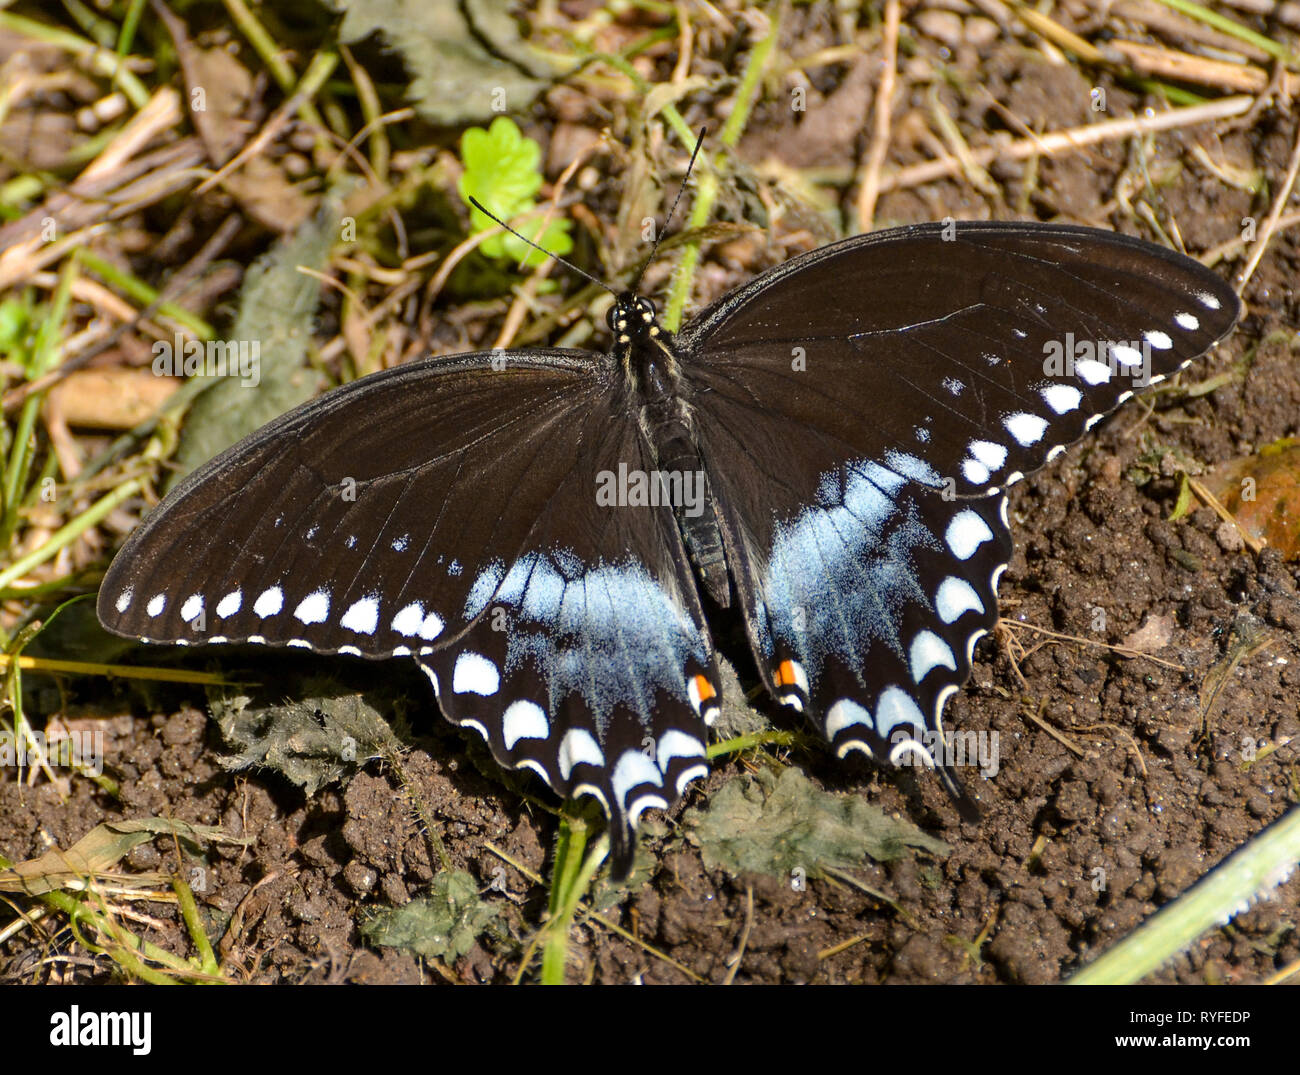 Limenitis arthemis astyanax or Spice bush swallow tail on the ground with wings spread. - Stock Image